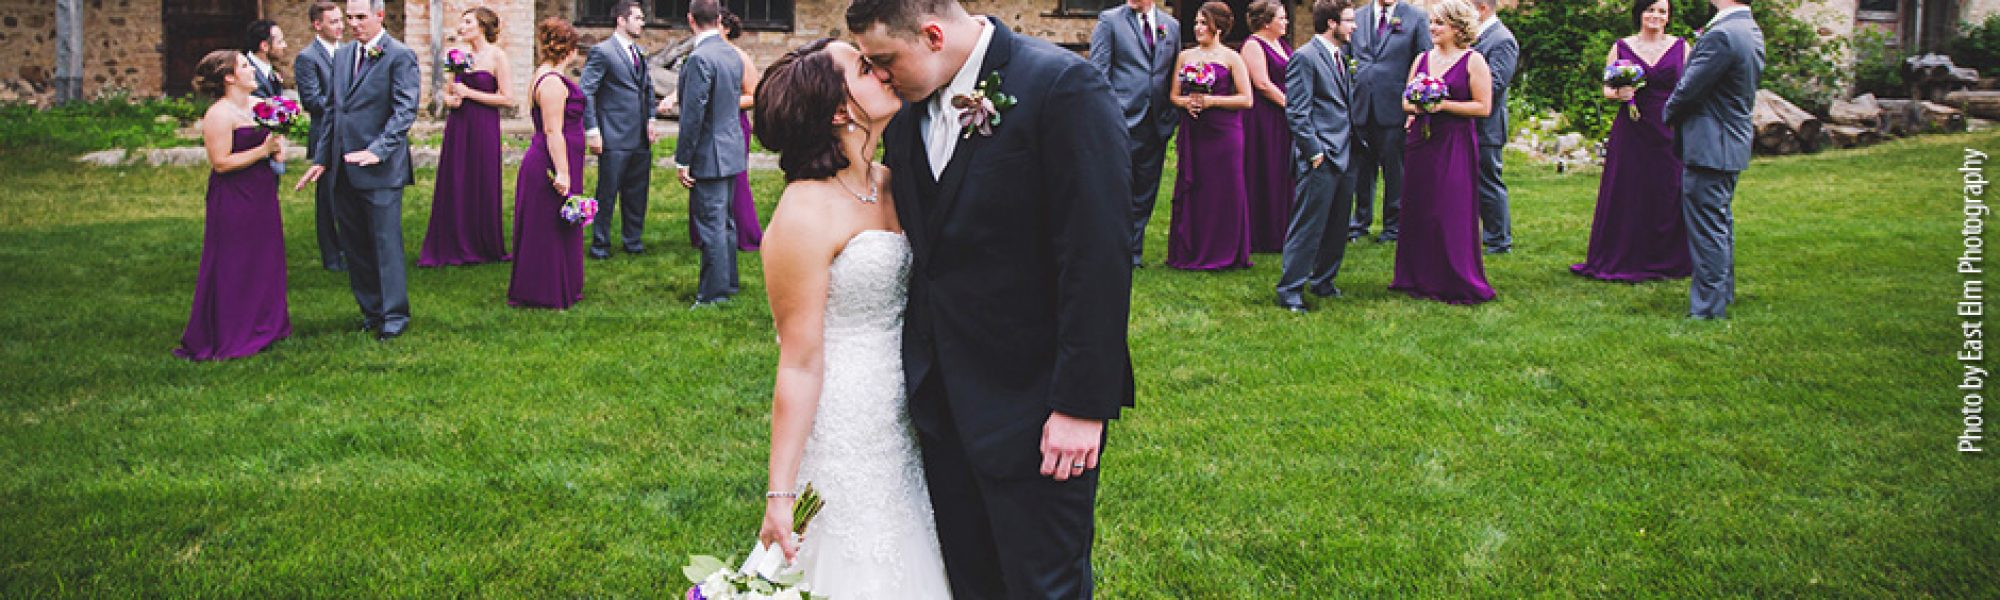 Elissa And Kevin S Classic Wedding At The Country Springs